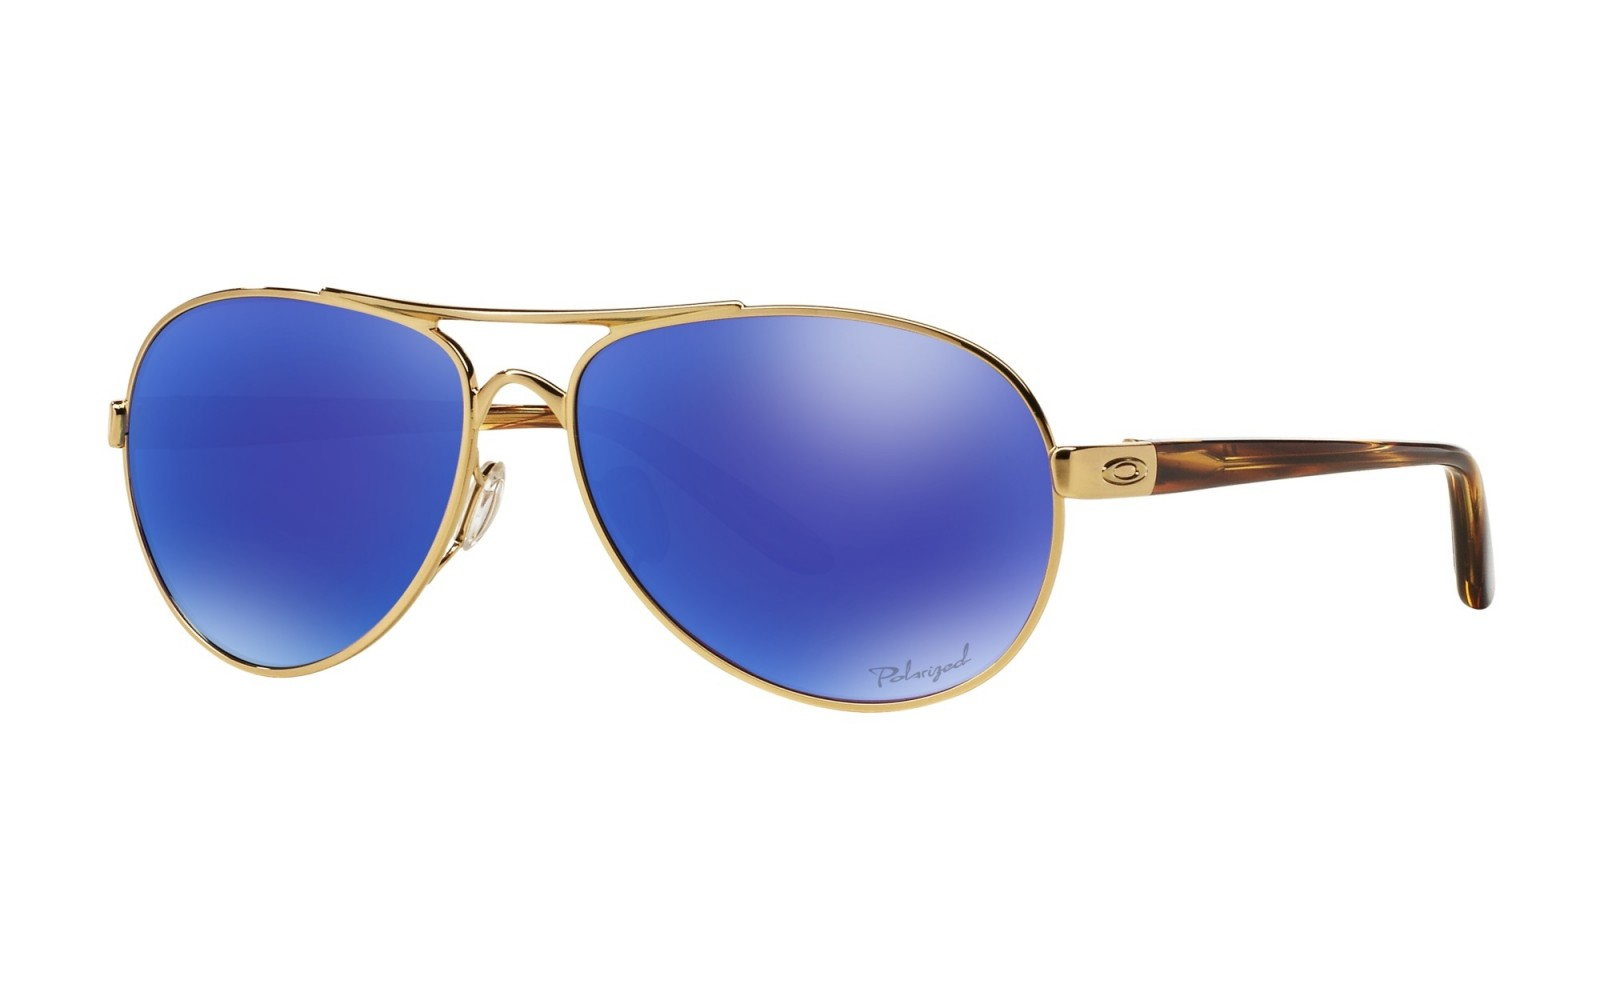 Oakley Tie Breaker Pop Polar Collection - Polished Gold / Violet Iridium Polarized - OO4108-14 Zonnebril